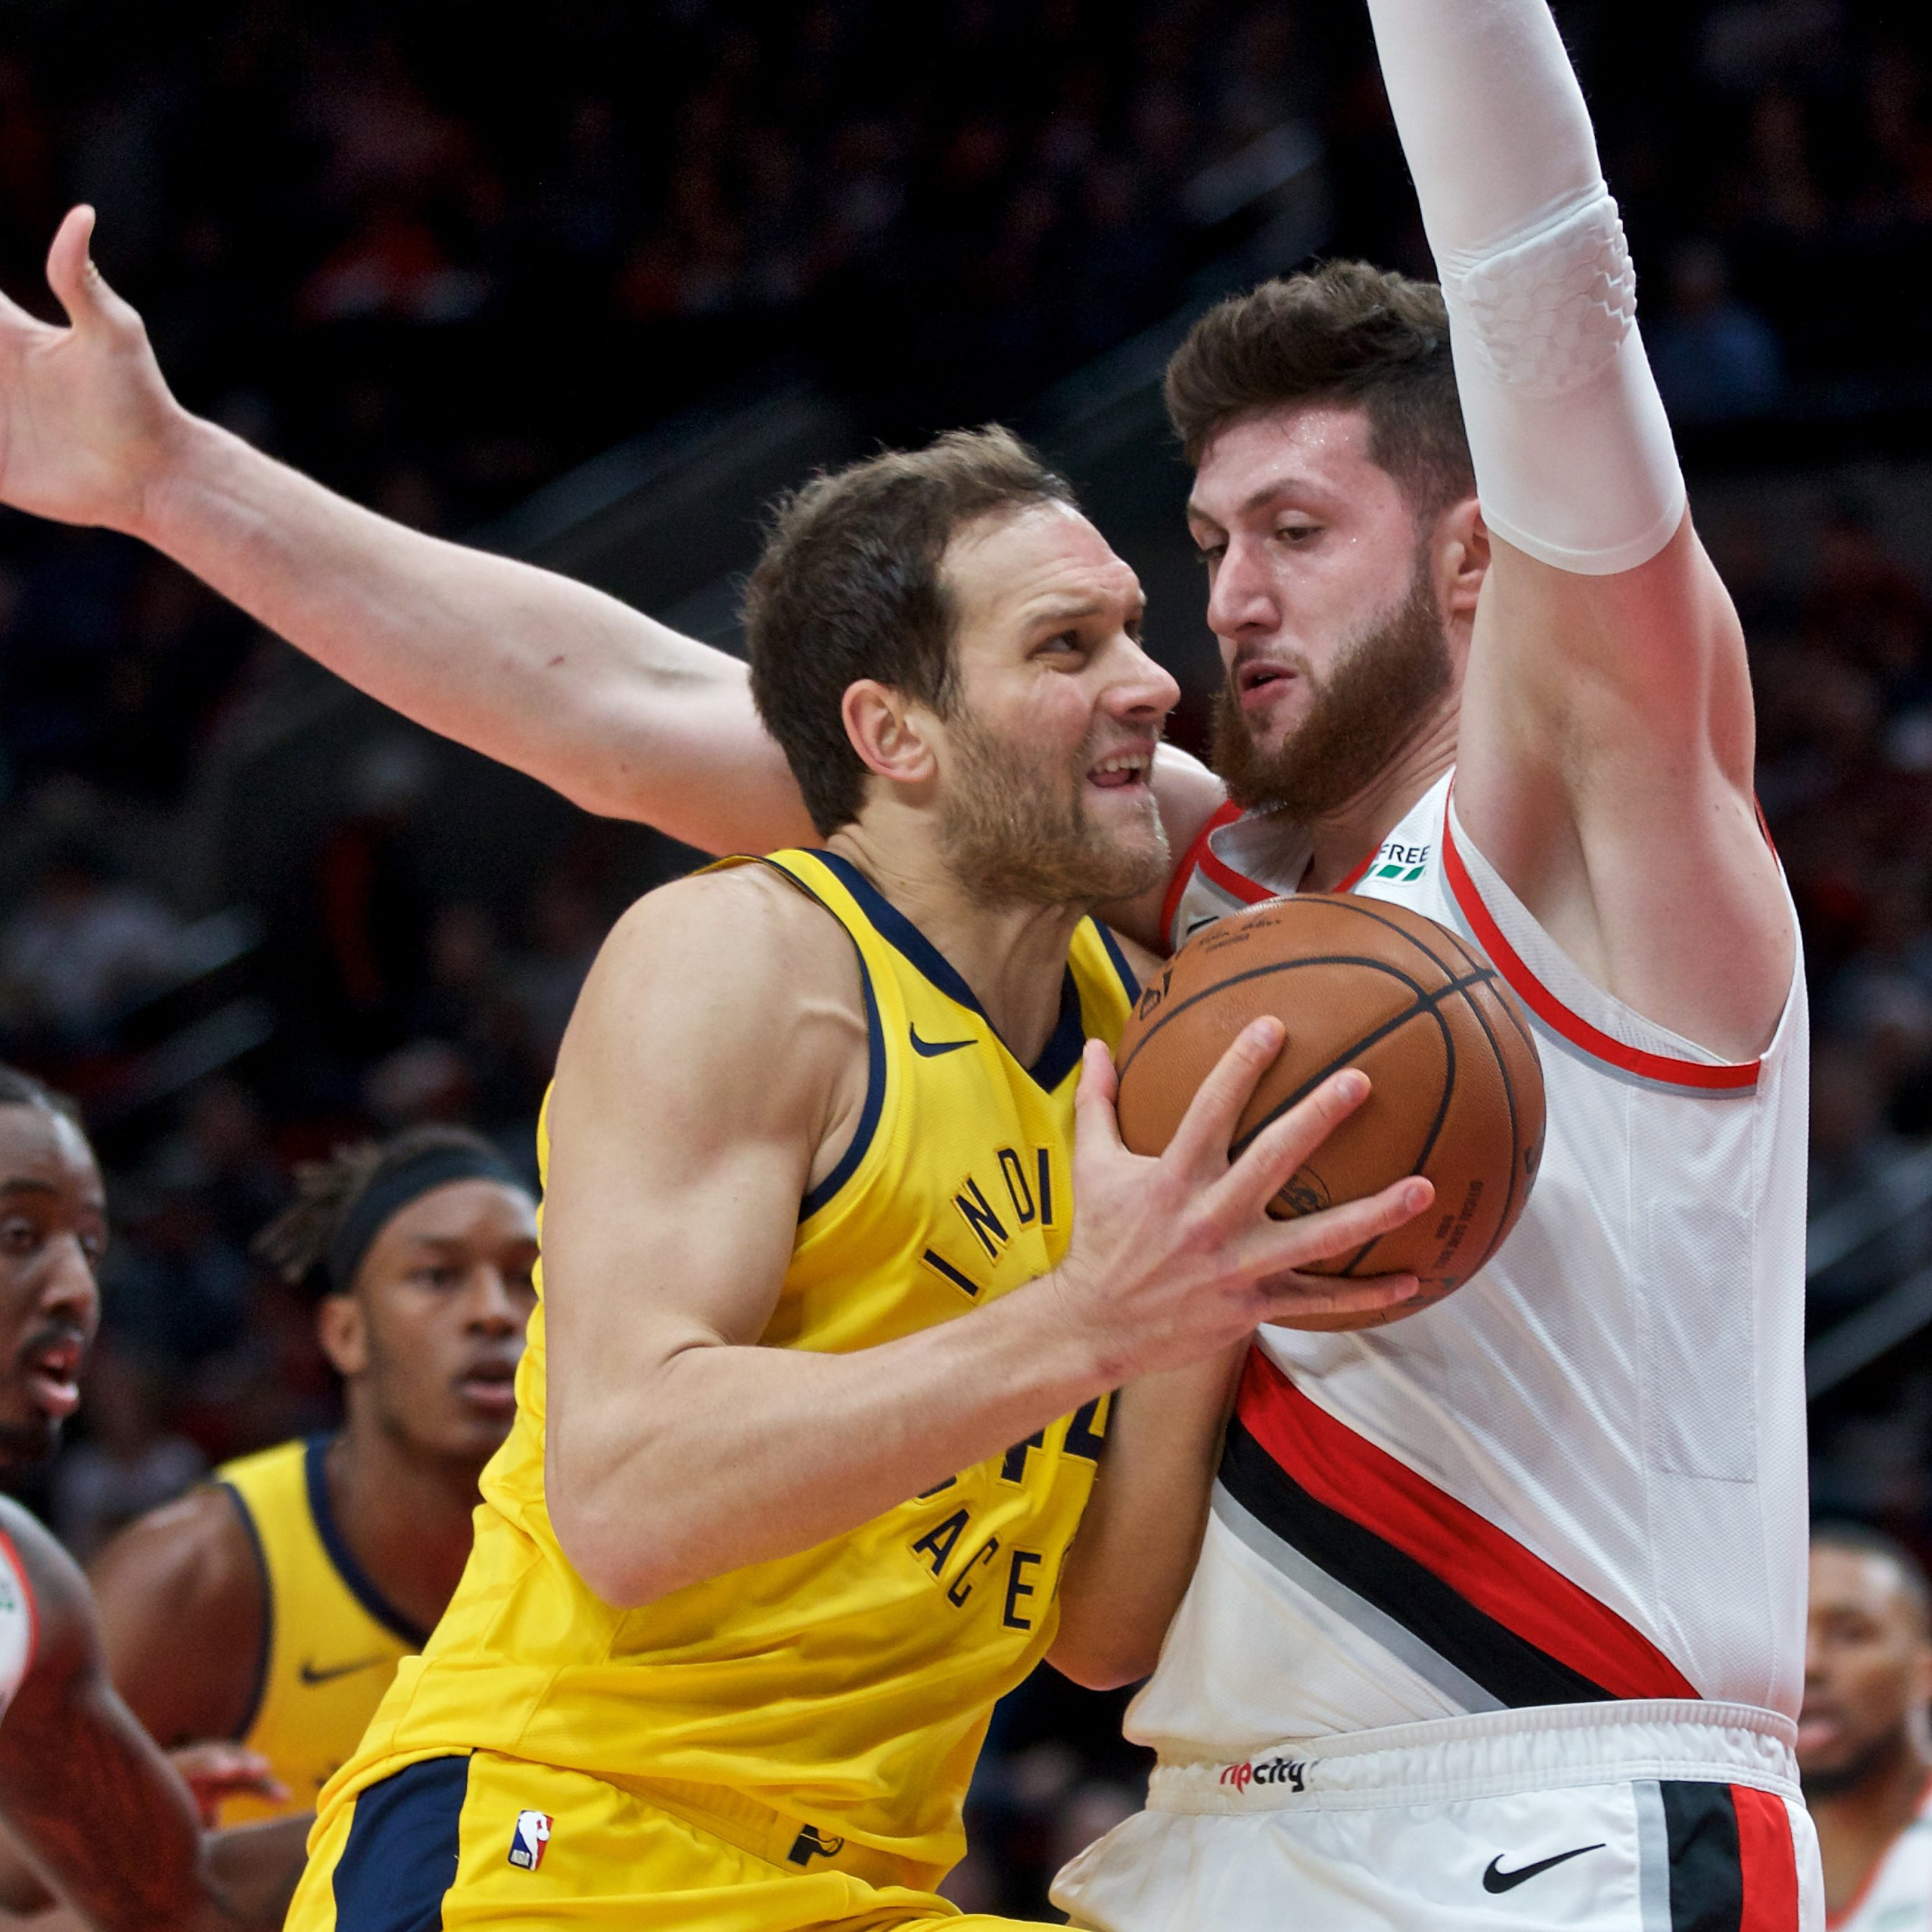 Pacers do it again: Start fast with double-digit lead, lose it quicker vs. Blazers